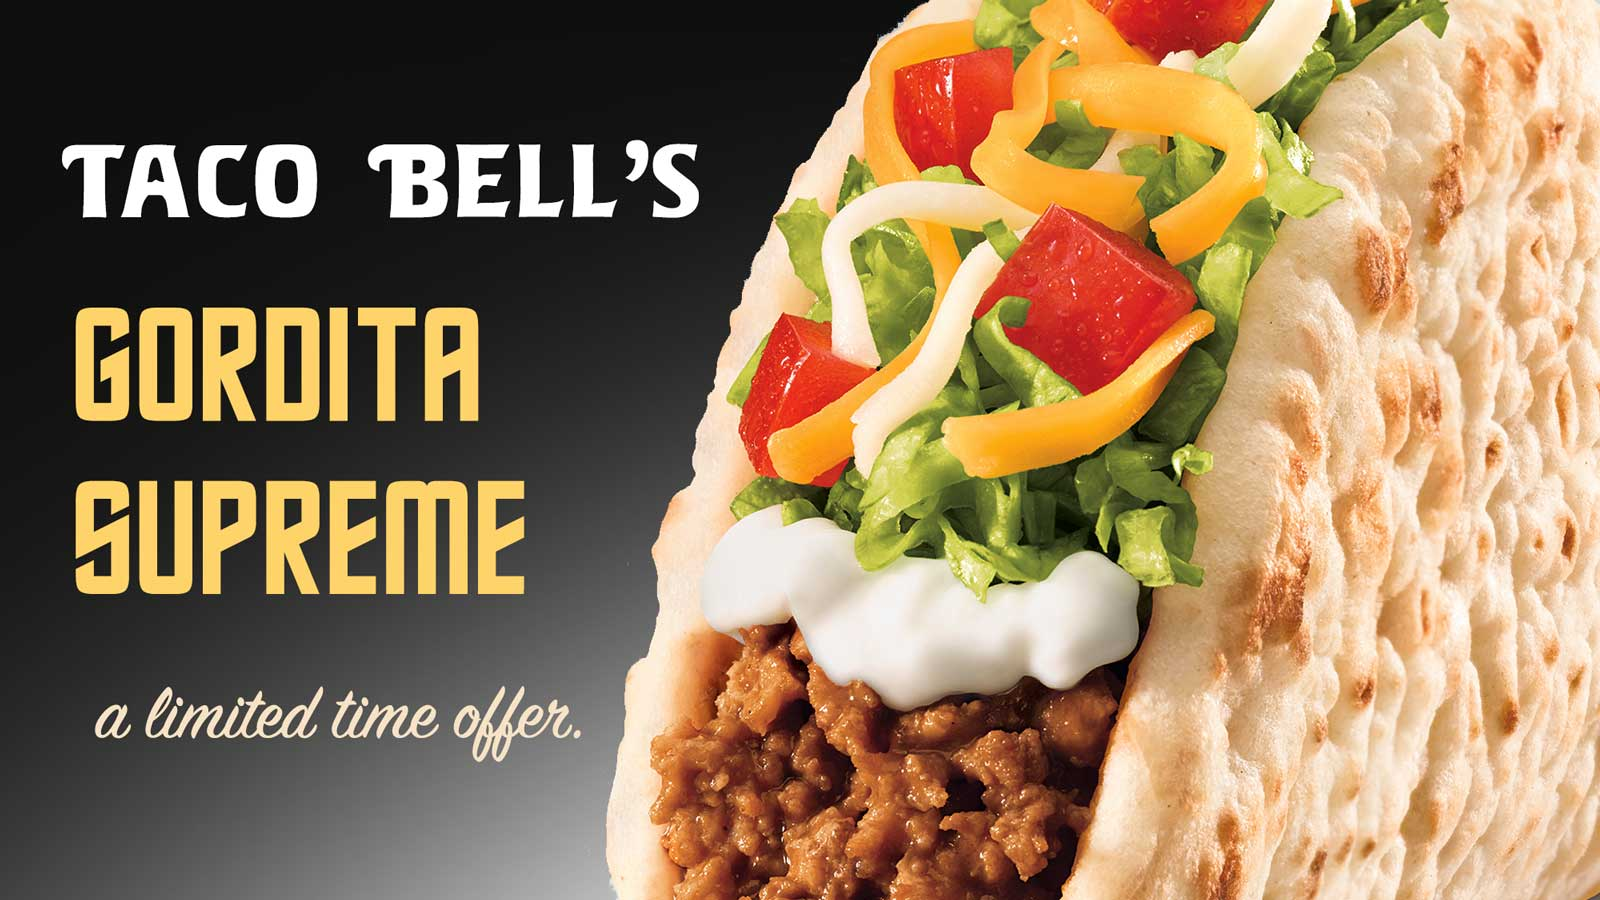 Taco Bell puts a tasty twist to your favorite taco